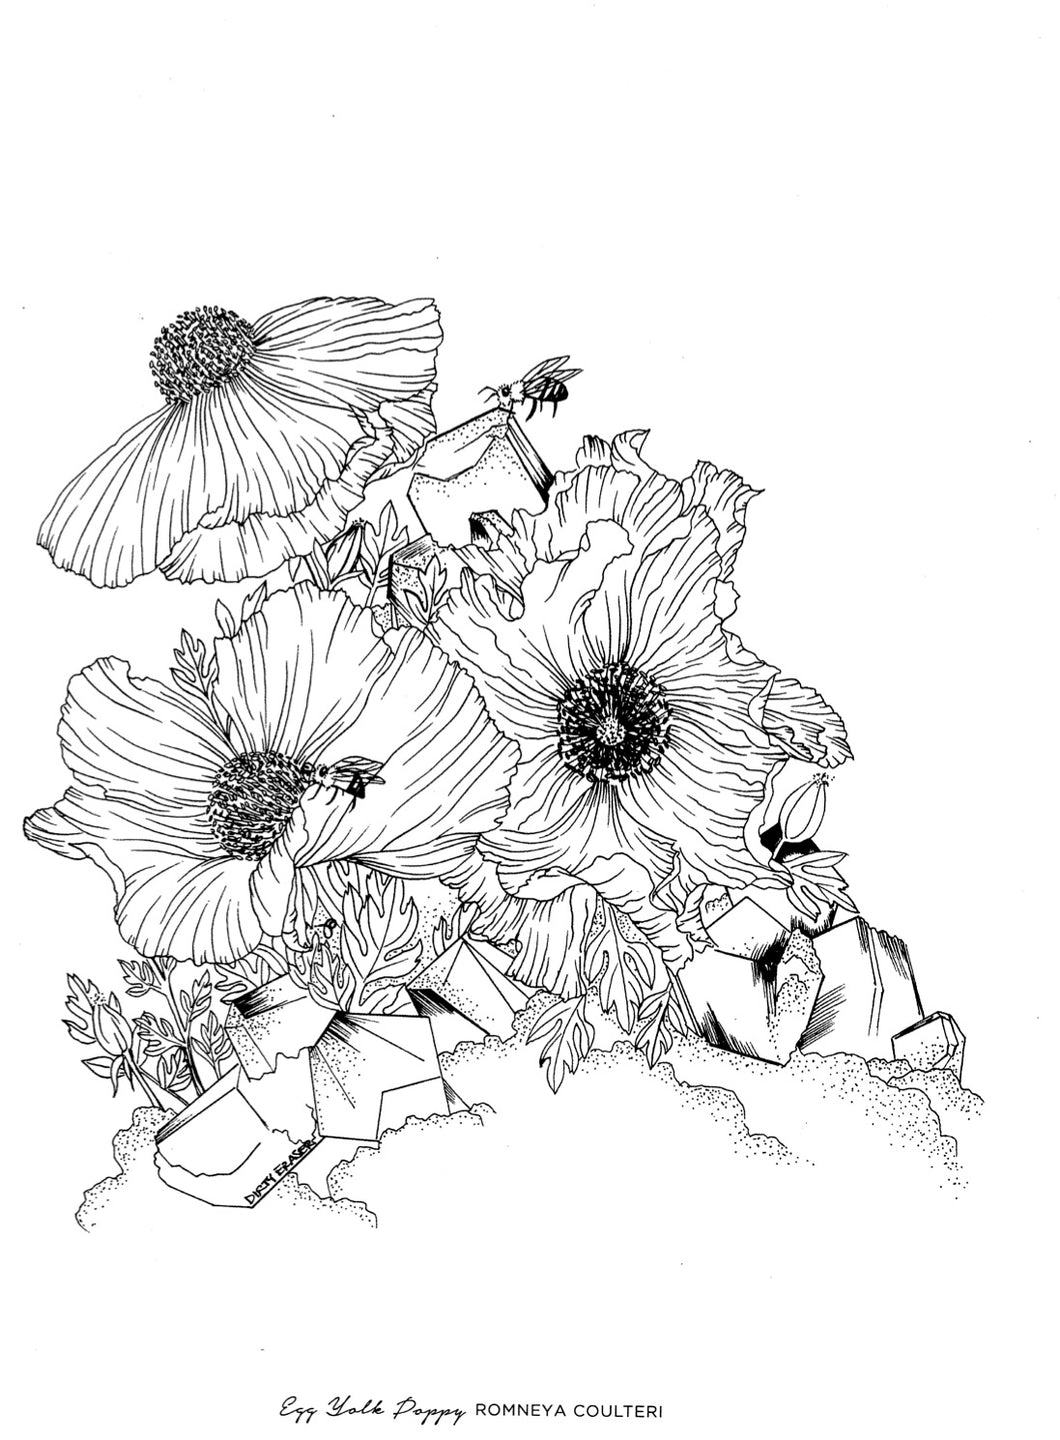 FREE COLORING PAGE - EGG YOLK POPPY